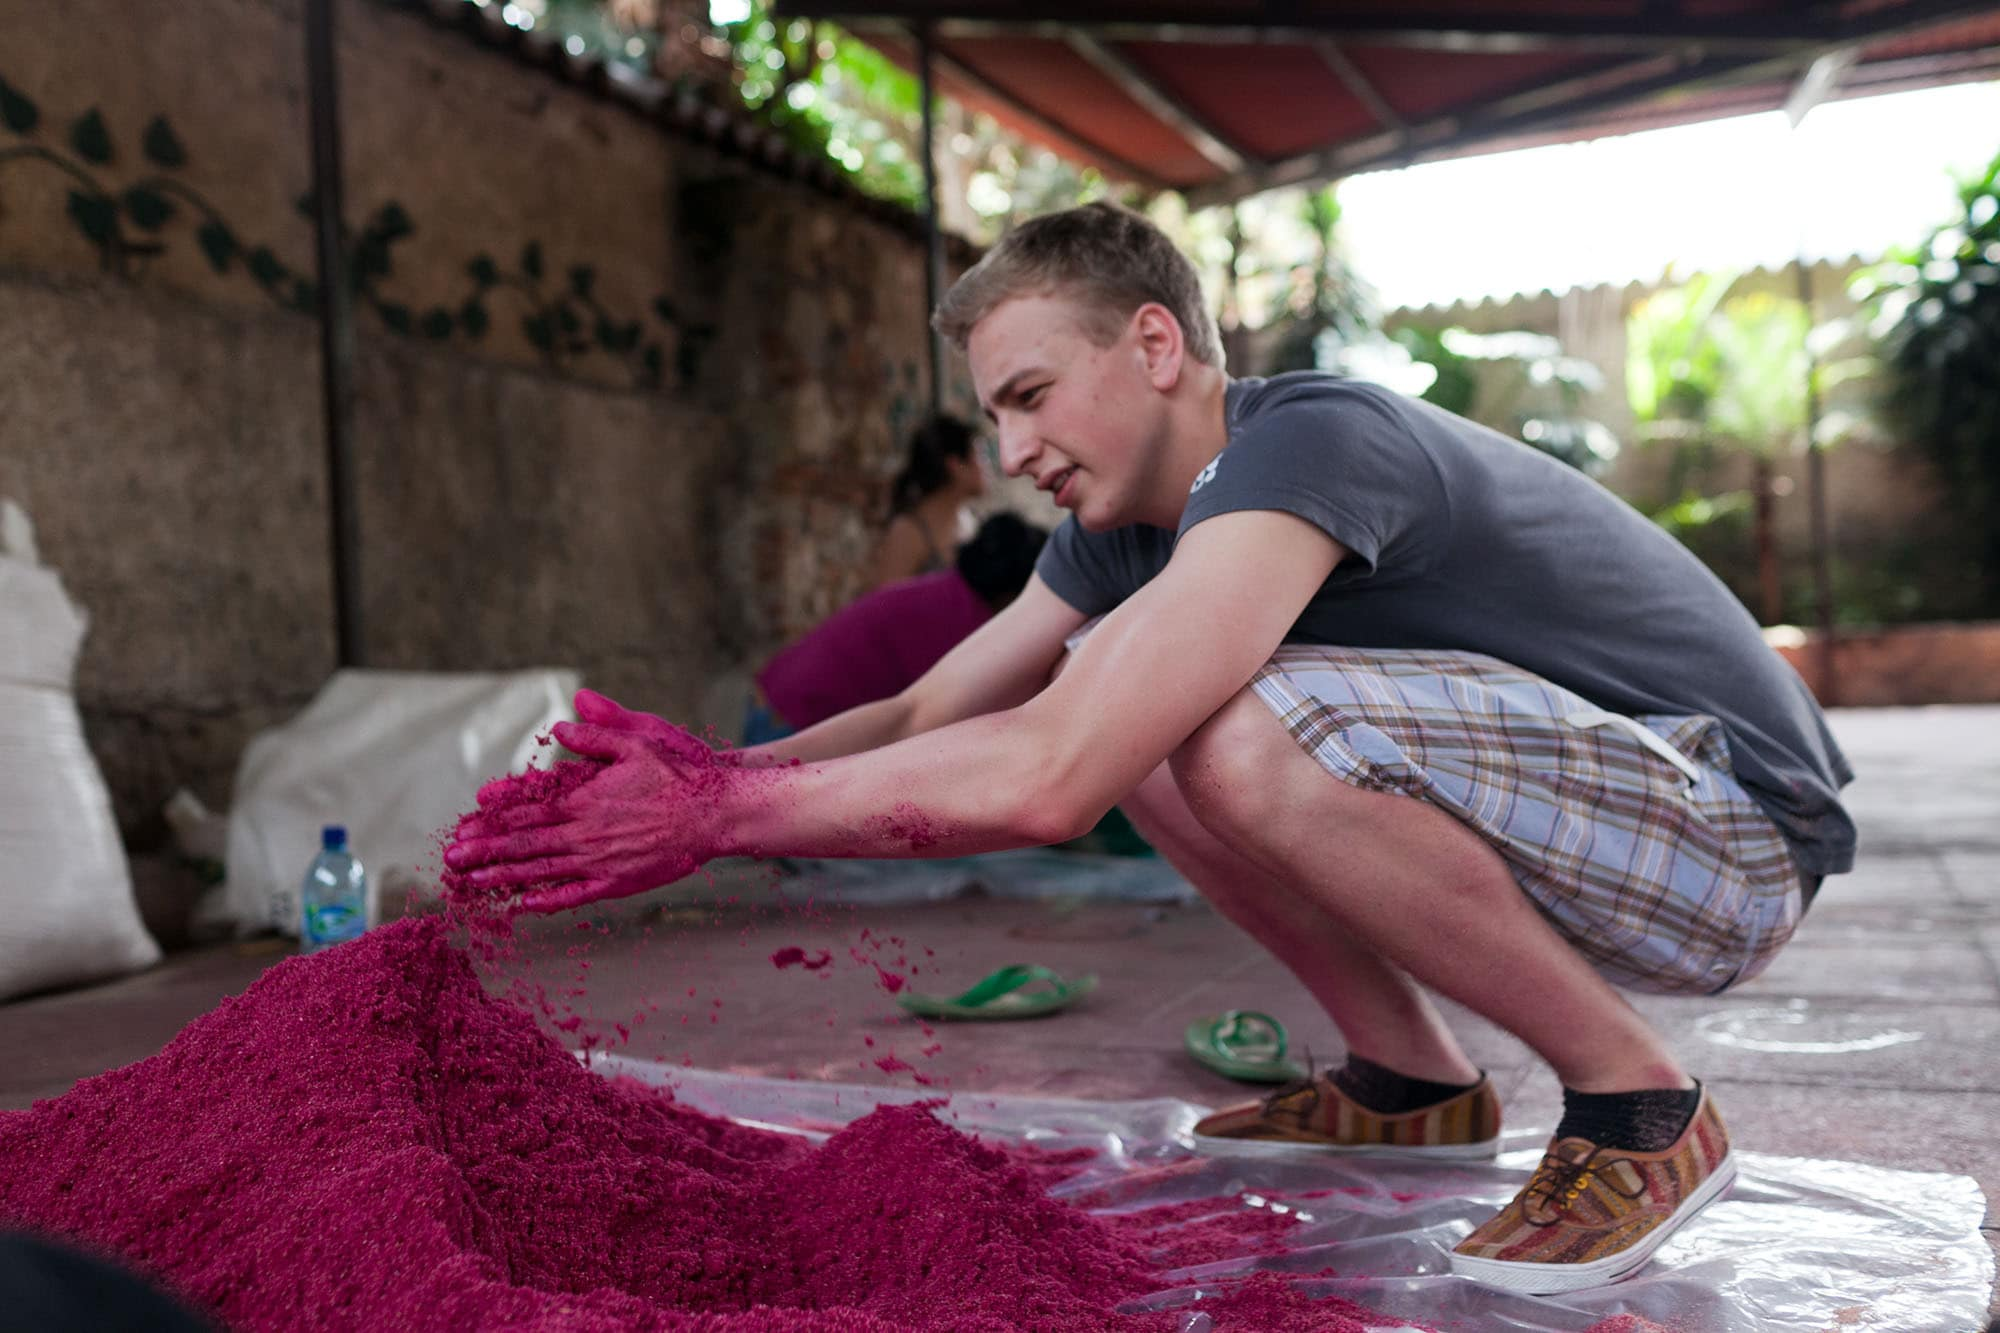 Dying sawdust to make an alfombra for Semana Santa in Antigua, Guatemala.